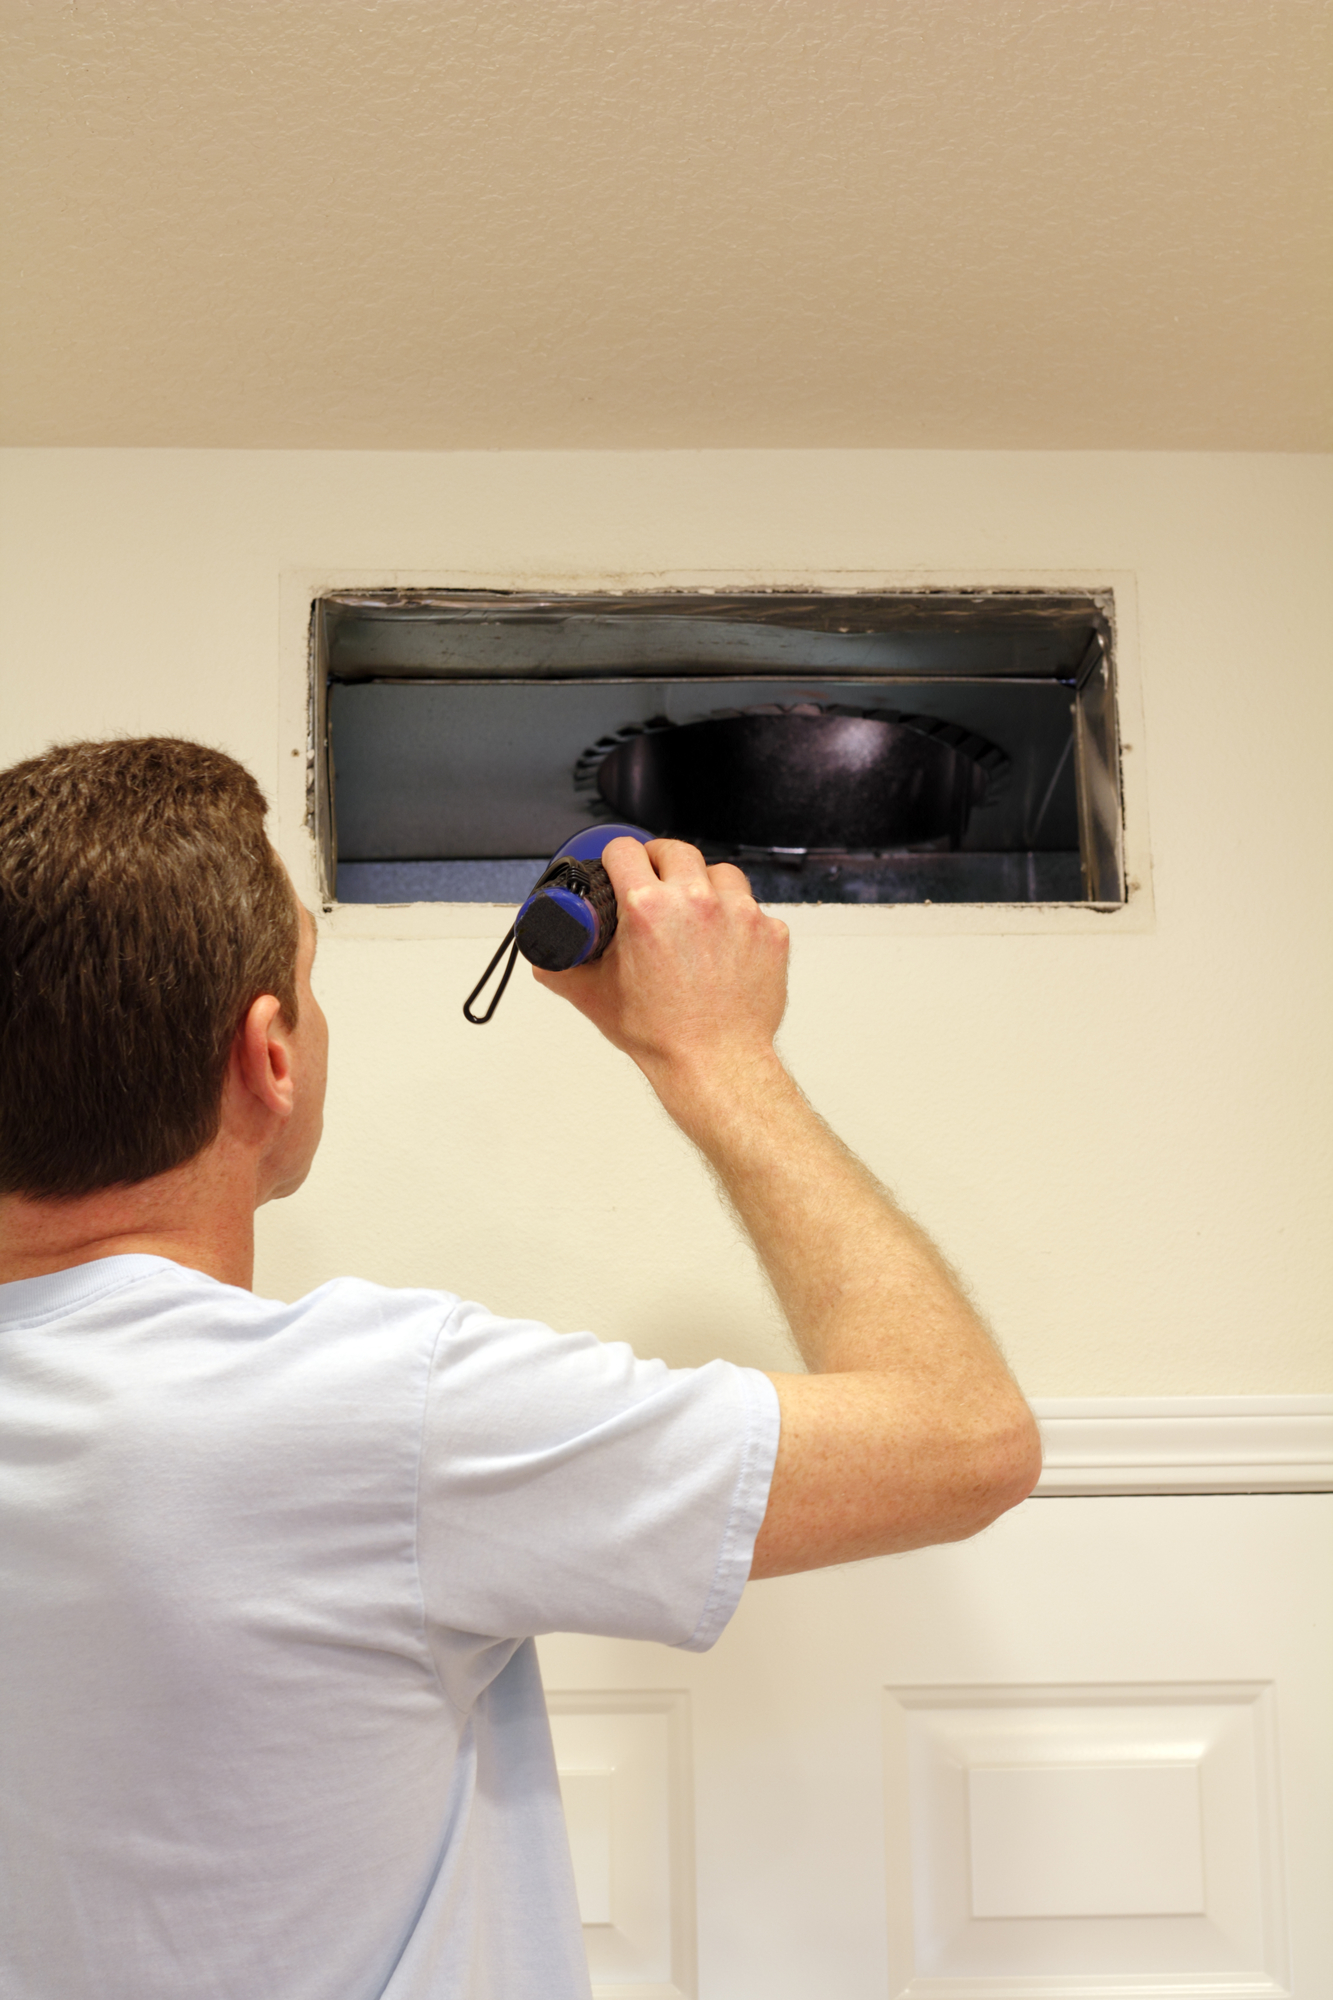 Some of the Most Common Reasons for Mold in AC Ducts